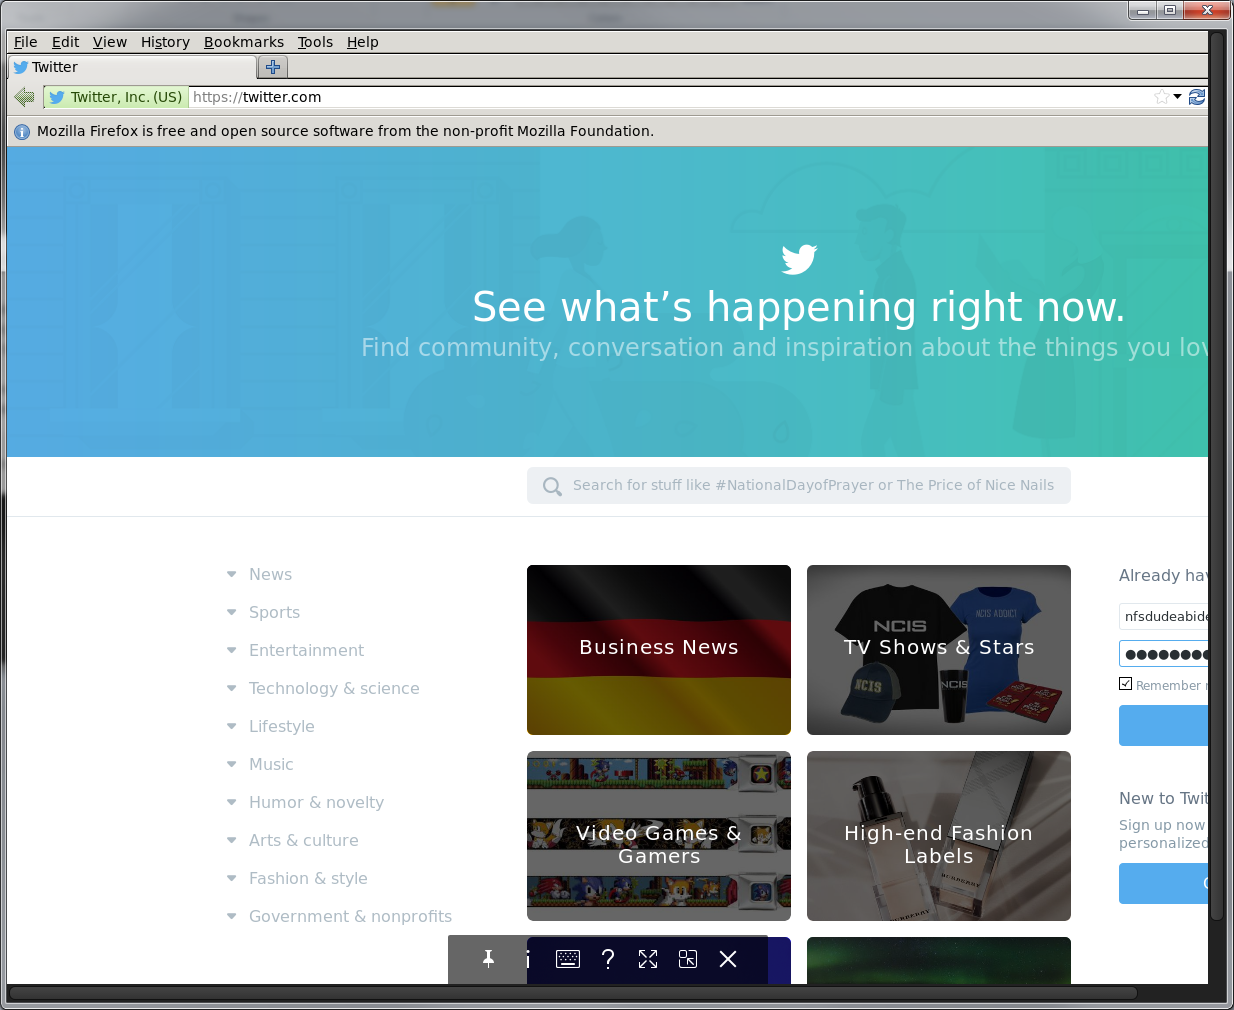 Using Docker to Run Twitter in a Firefox Container